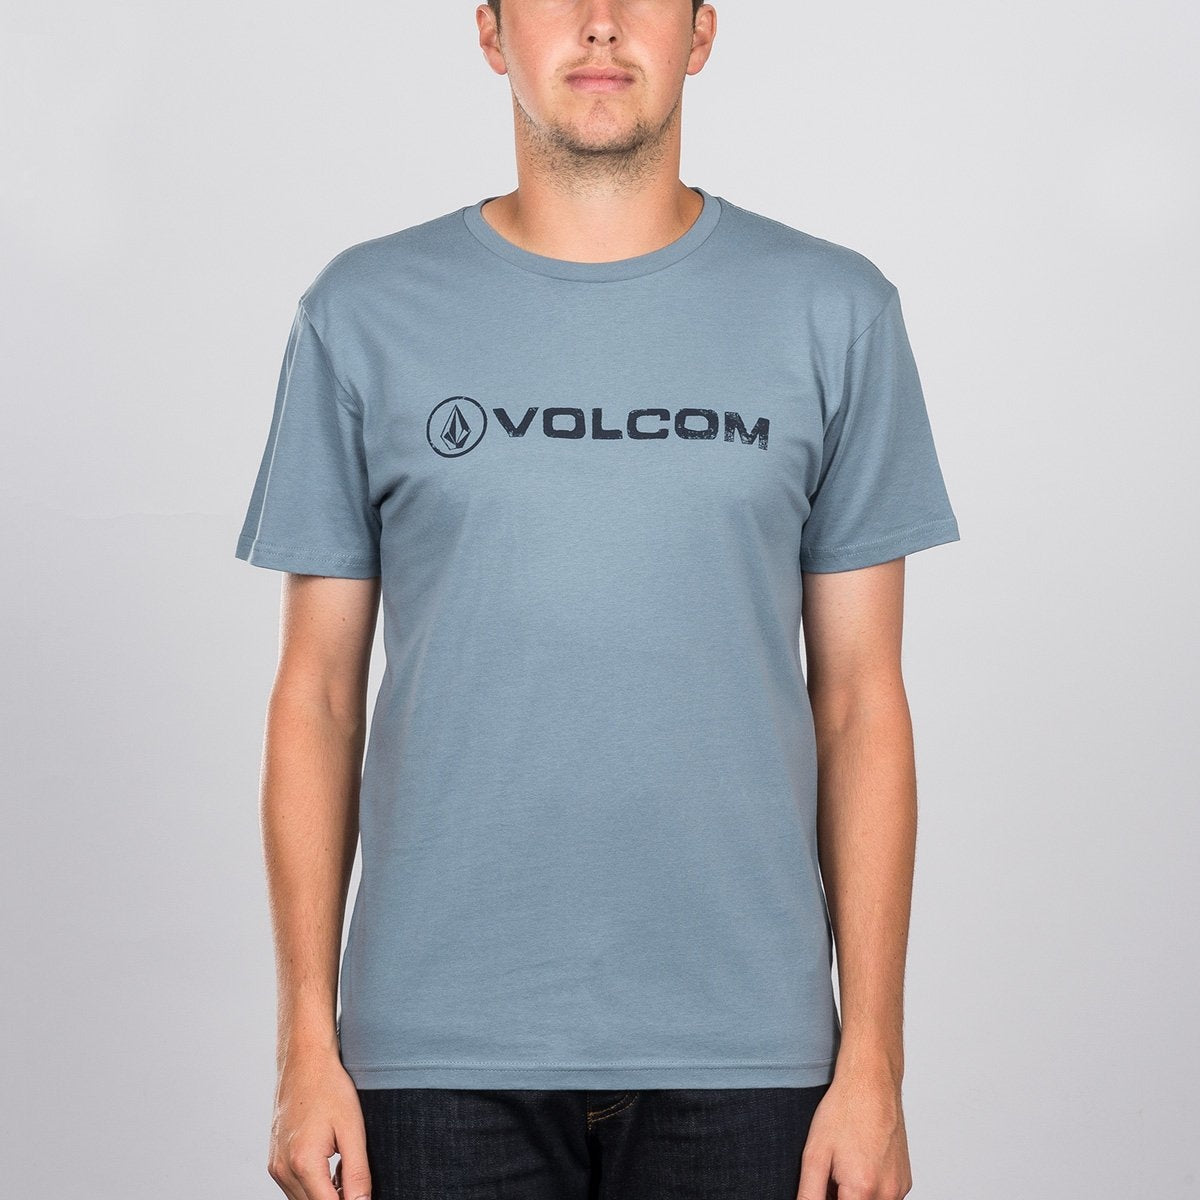 Volcom Lido Euro T-Shirt Ash Blue - Clothing